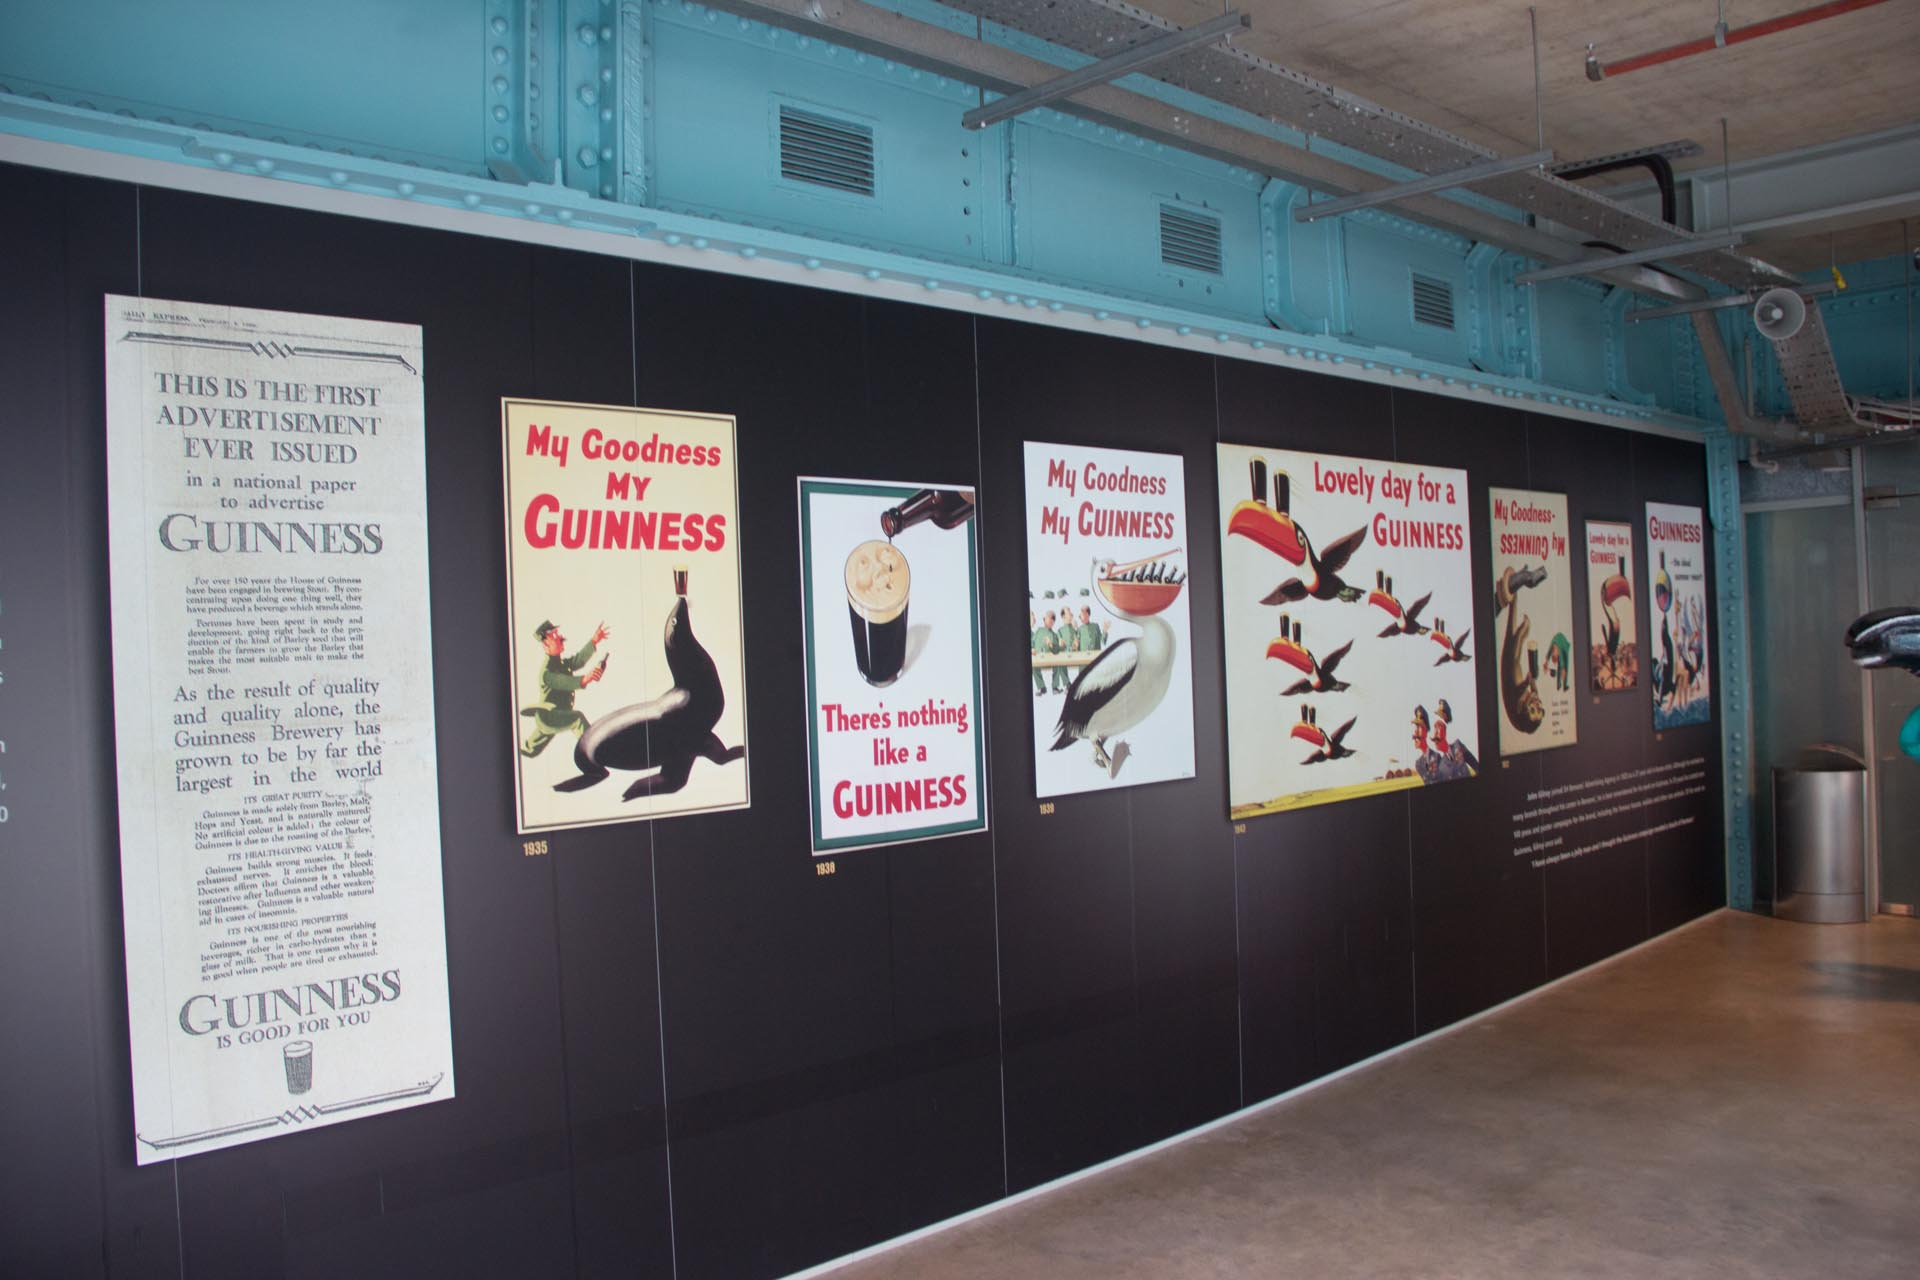 Poster advertisements for Guinness